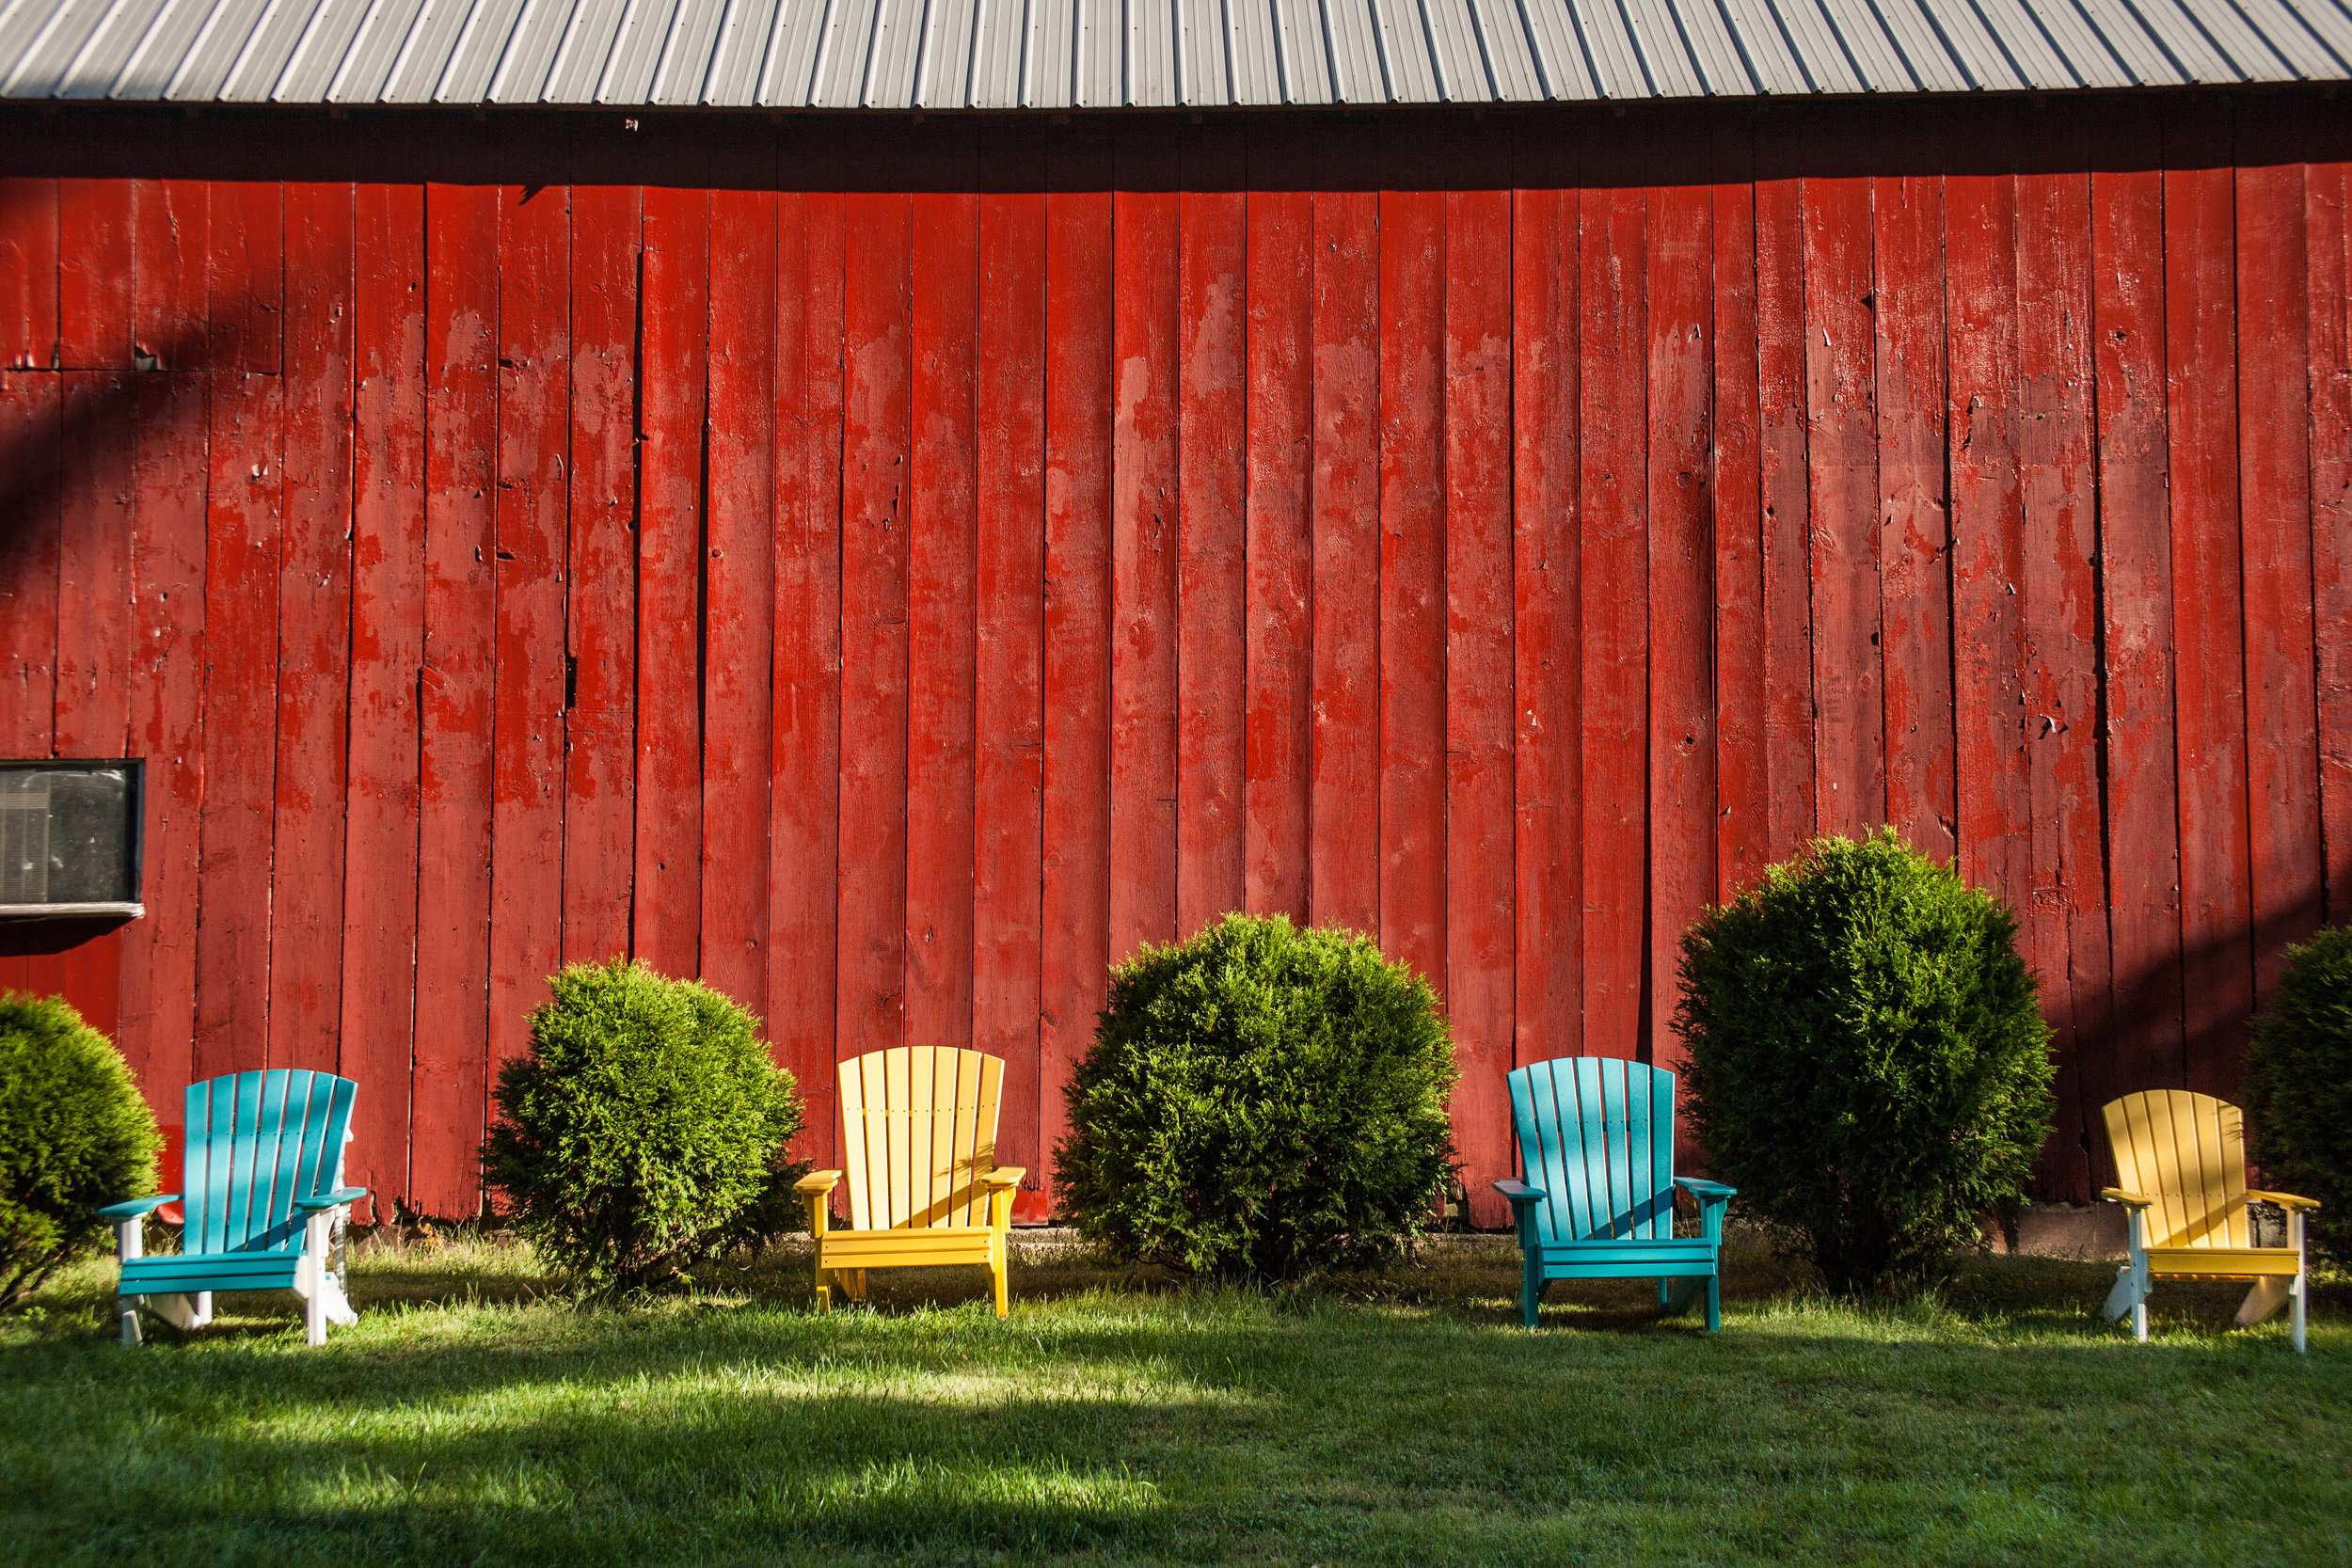 Deck Chairs in Front of Barn.jpg